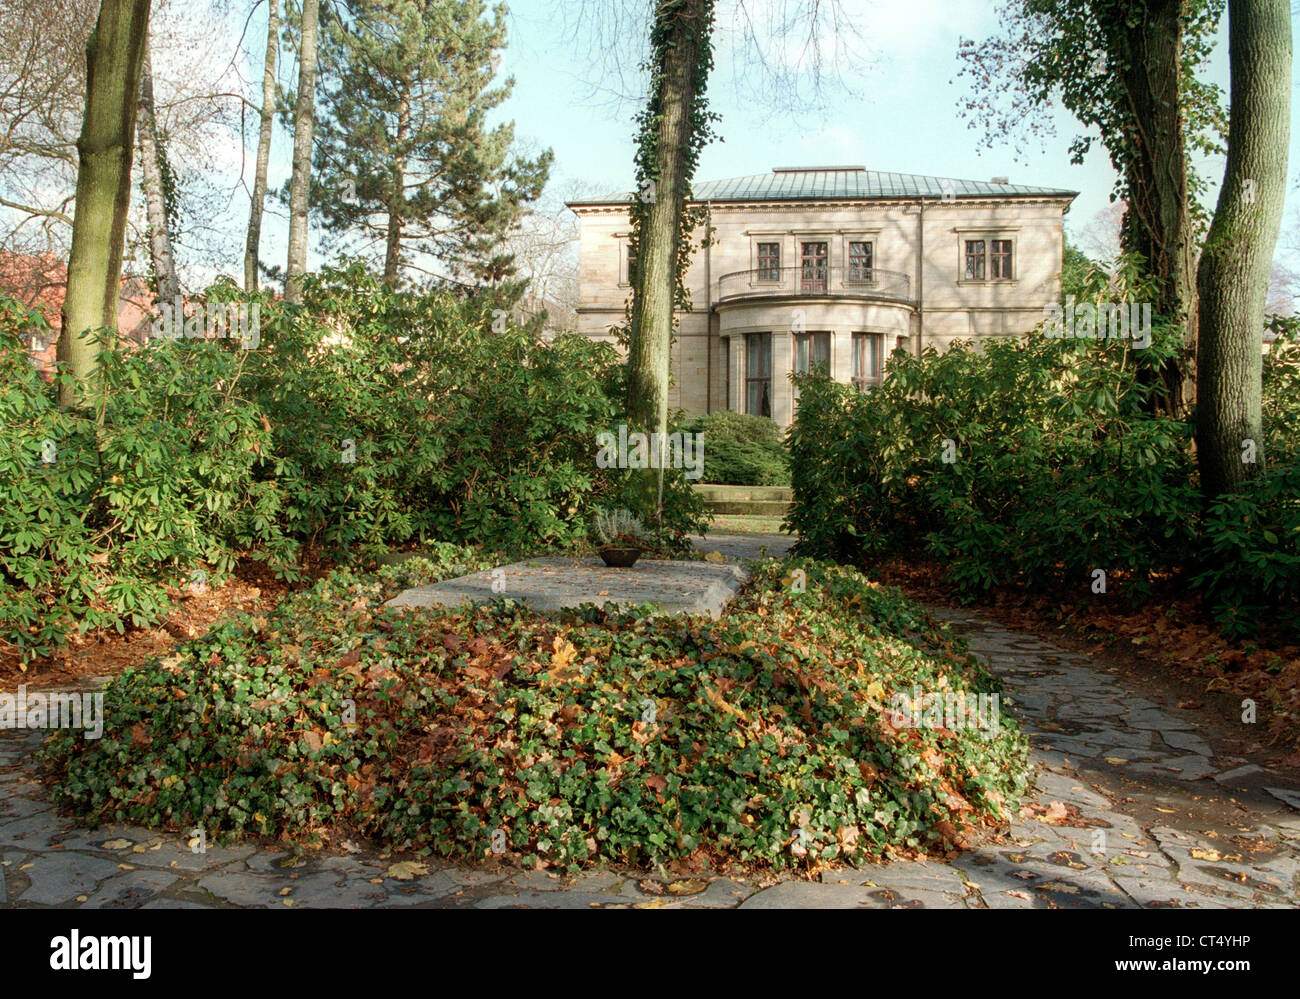 The grave of Richard Wagner and the Villa Wahnfried in Bayreuth Stock Photo